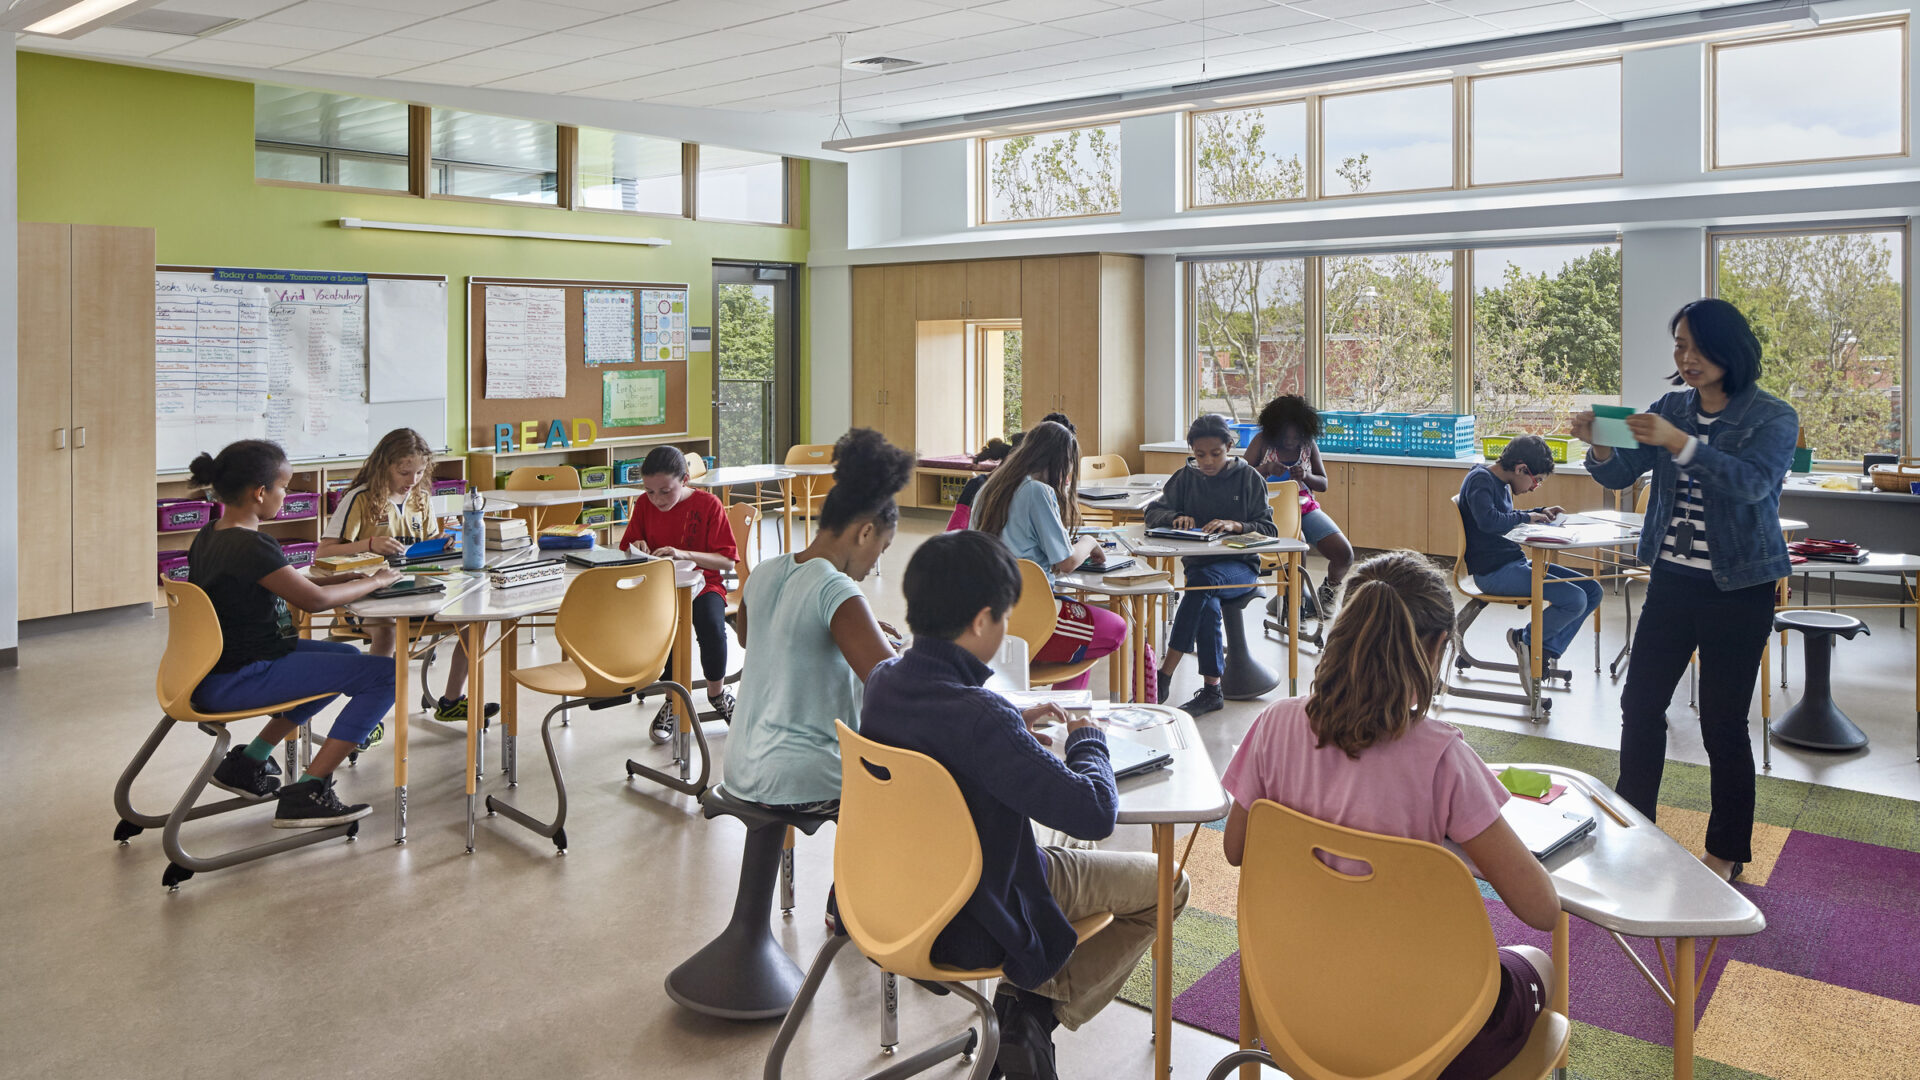 Dr. Martin Luther King, Jr. School, Designed by Perkins Eastman, Achieves LEED Platinum Certification by USGBC 1